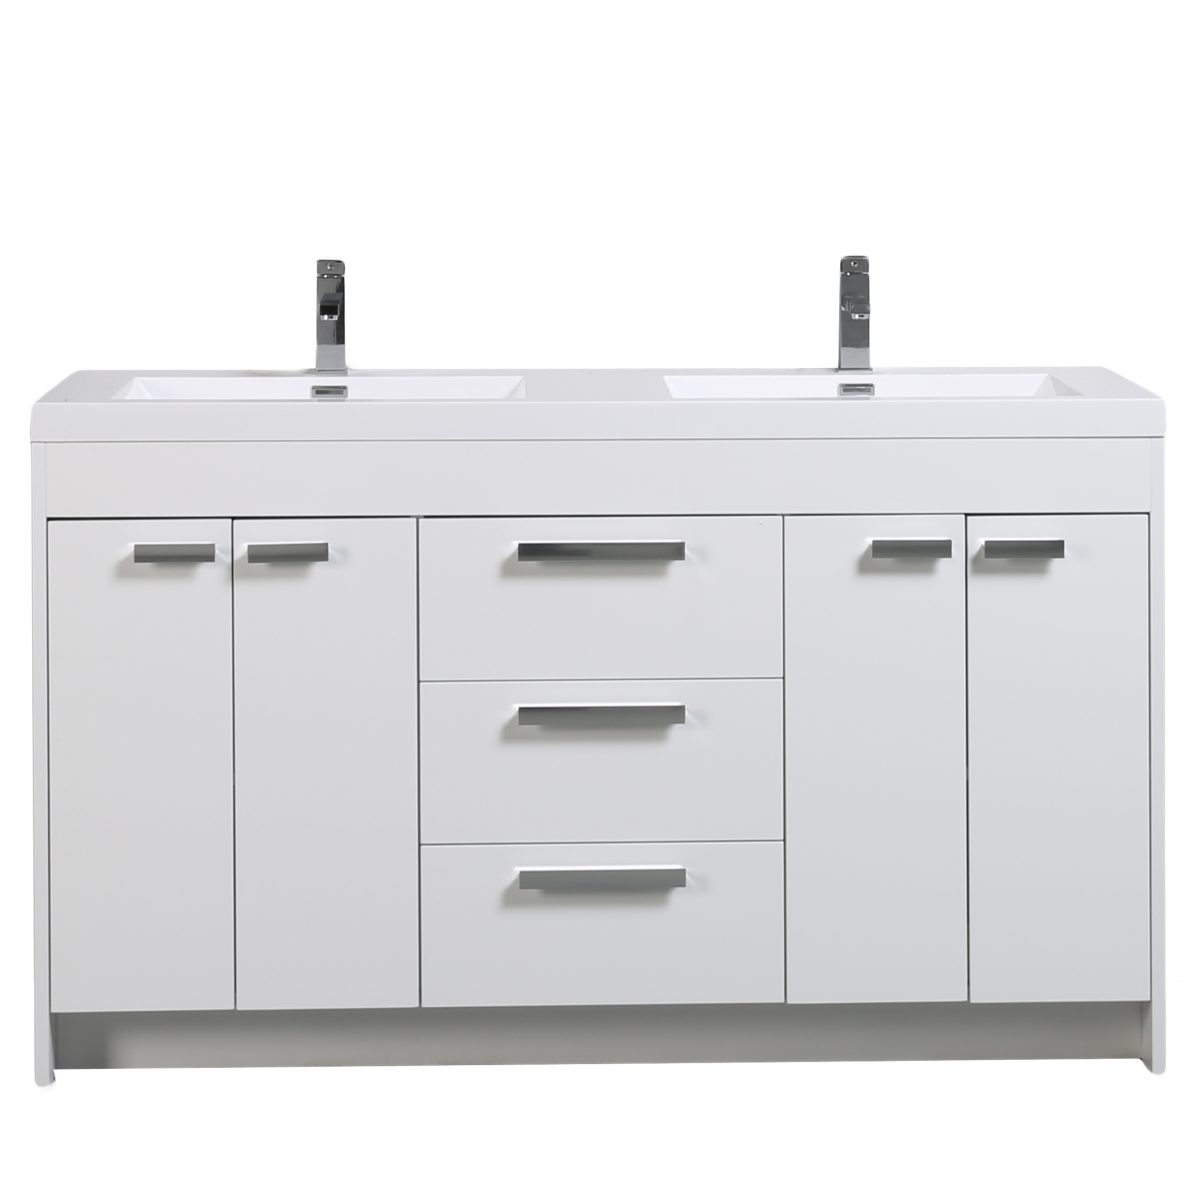 Eviva Lugano 60 In. White Modern Bathroom Vanity With White Integrated Acrylic Double Sink